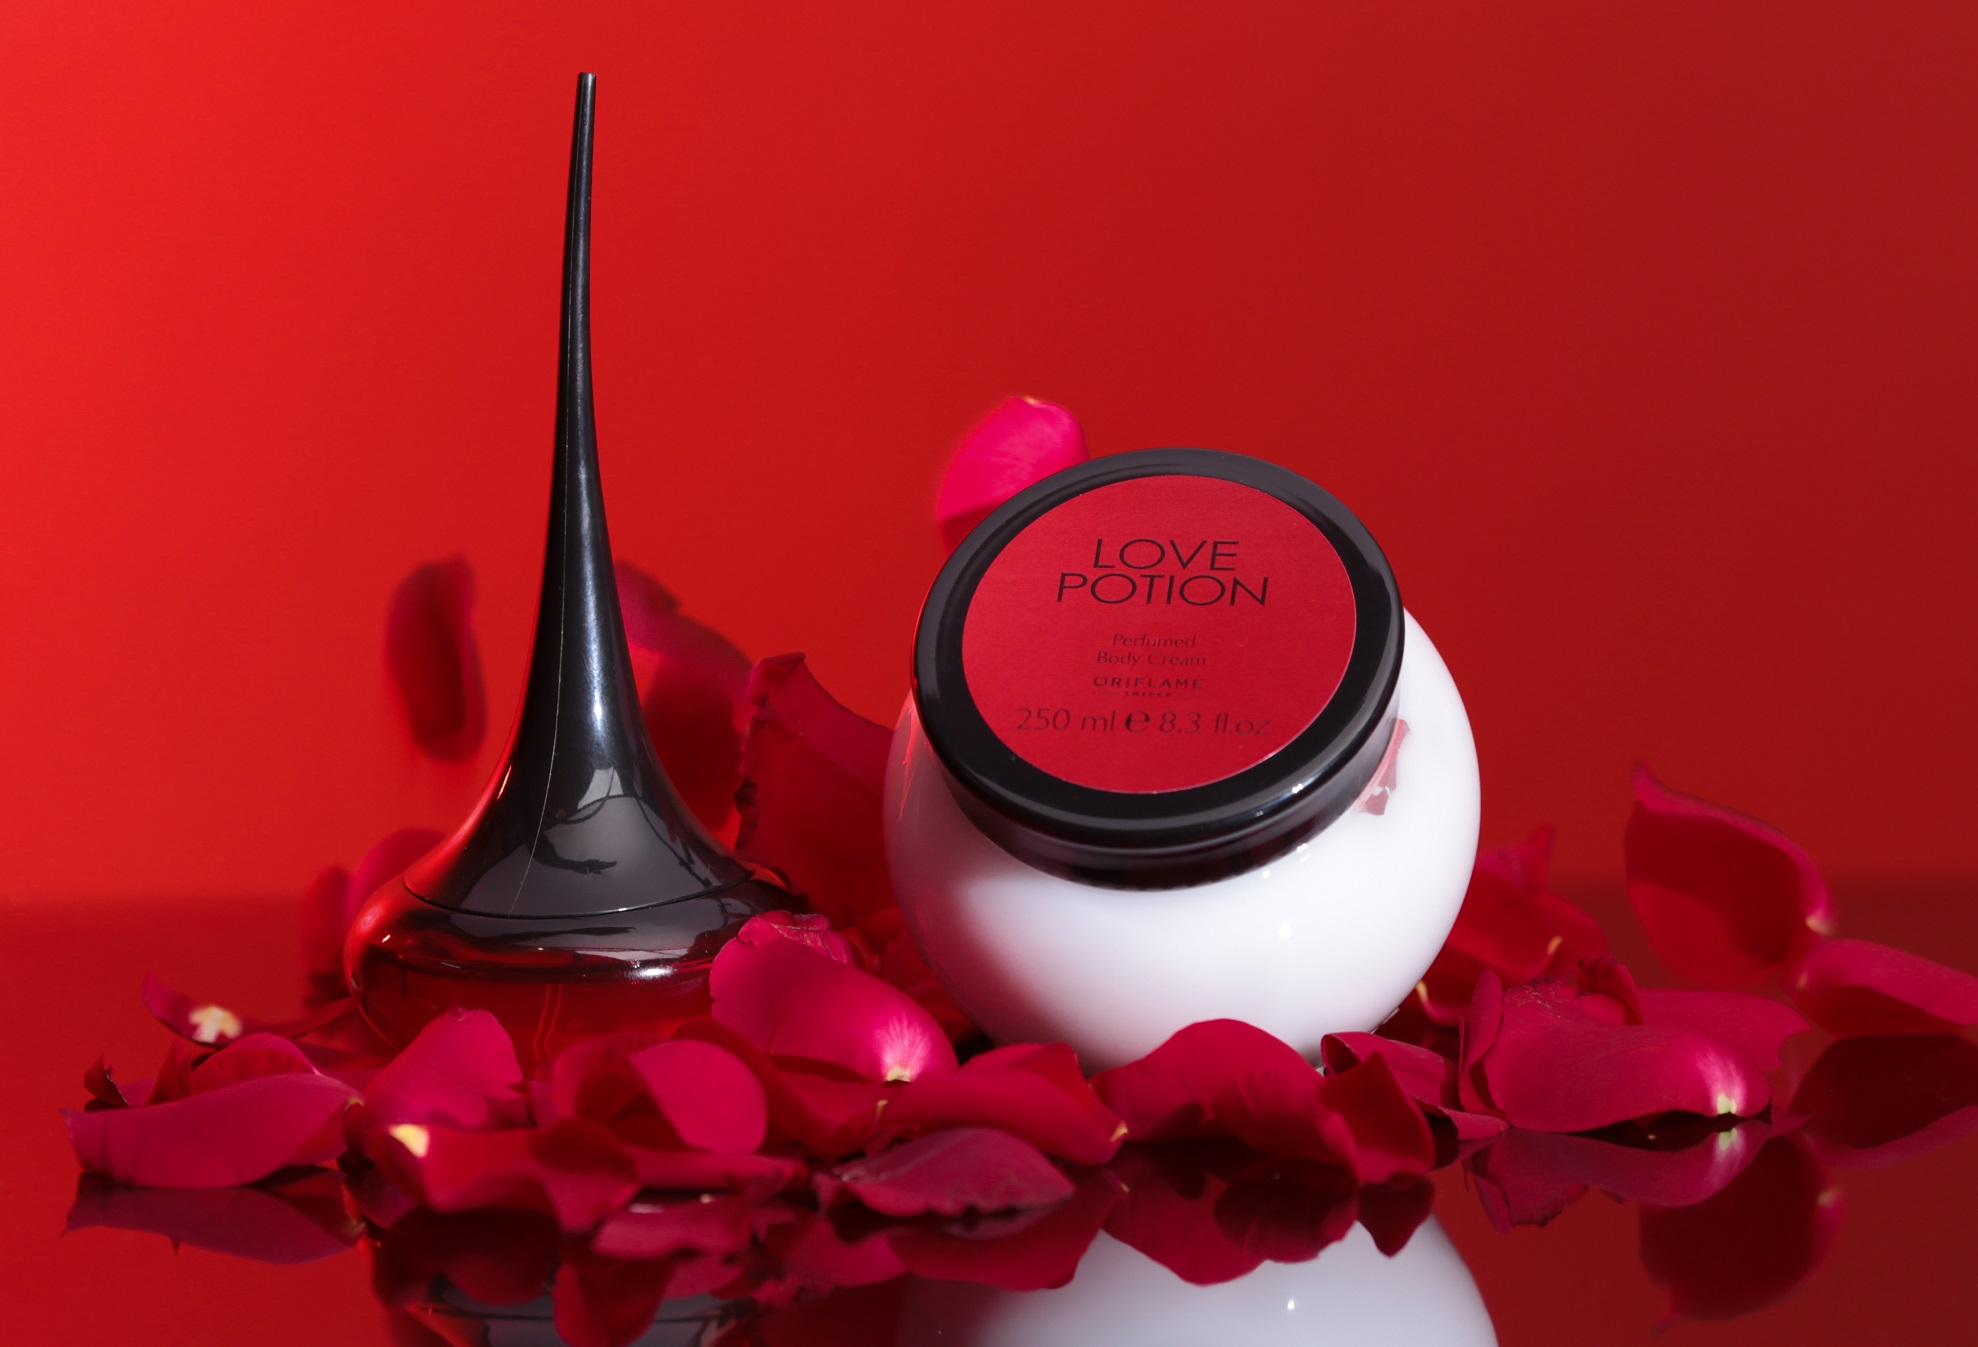 love potion by oriflame